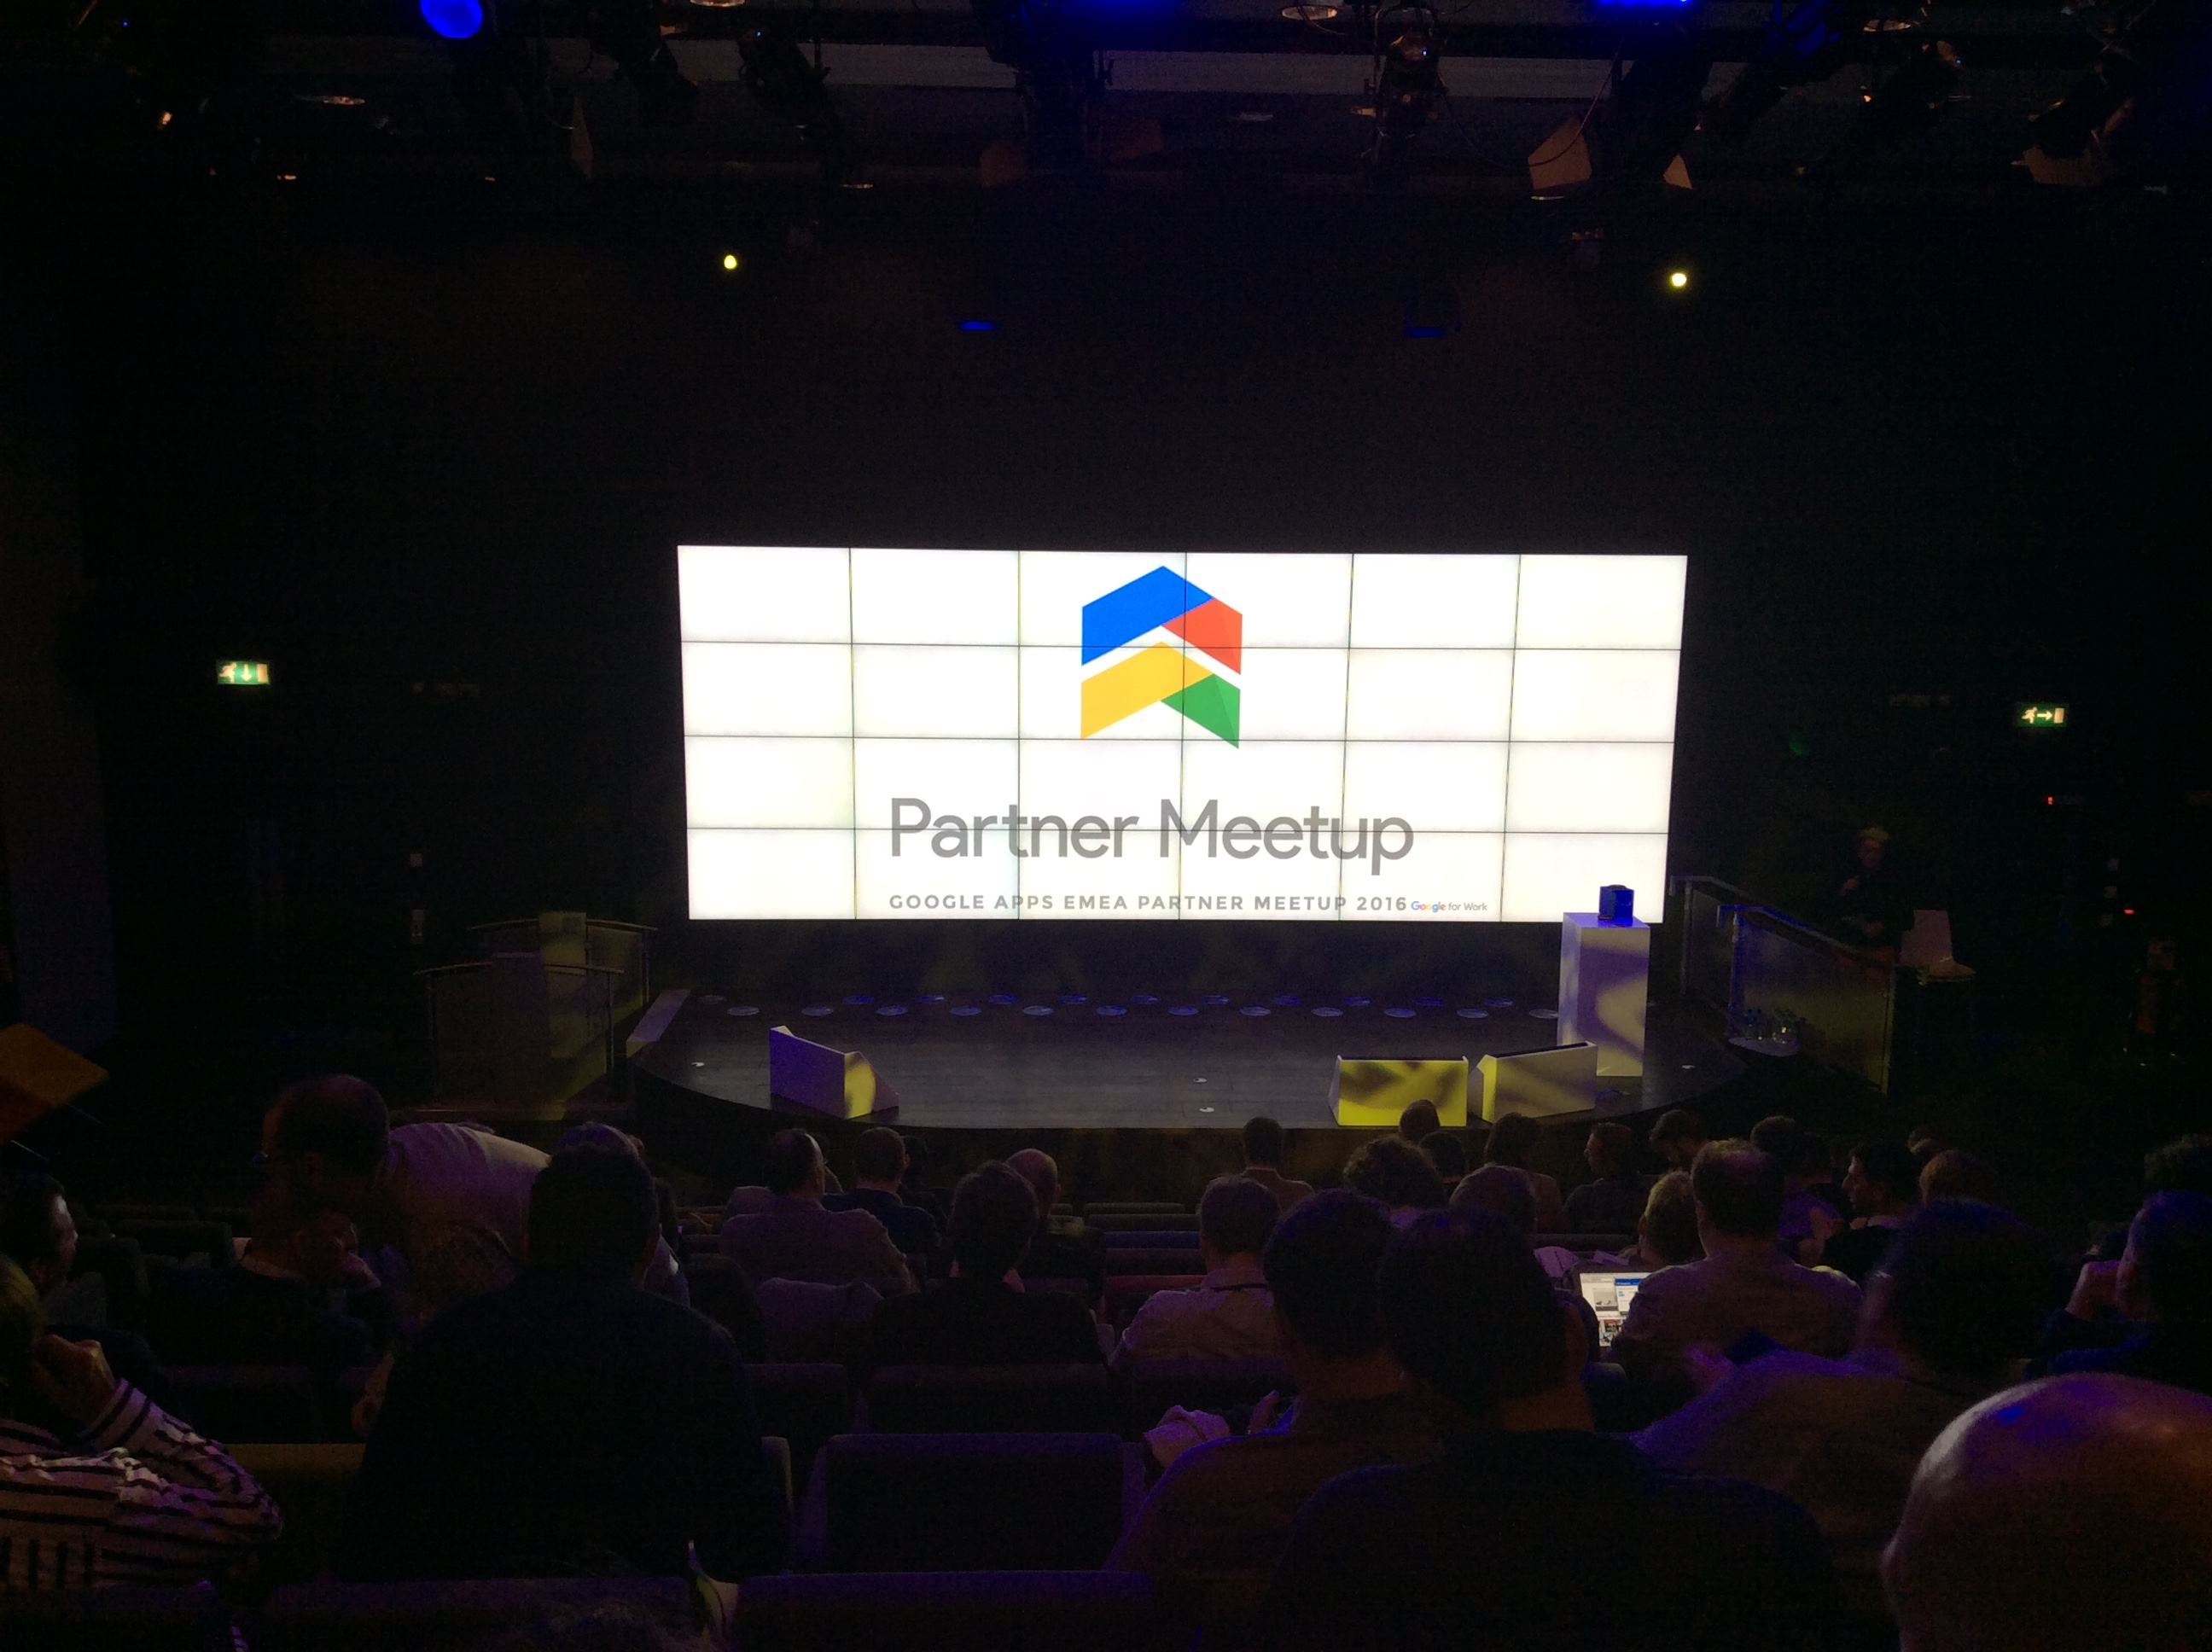 Partner Meetup, Google Dublin